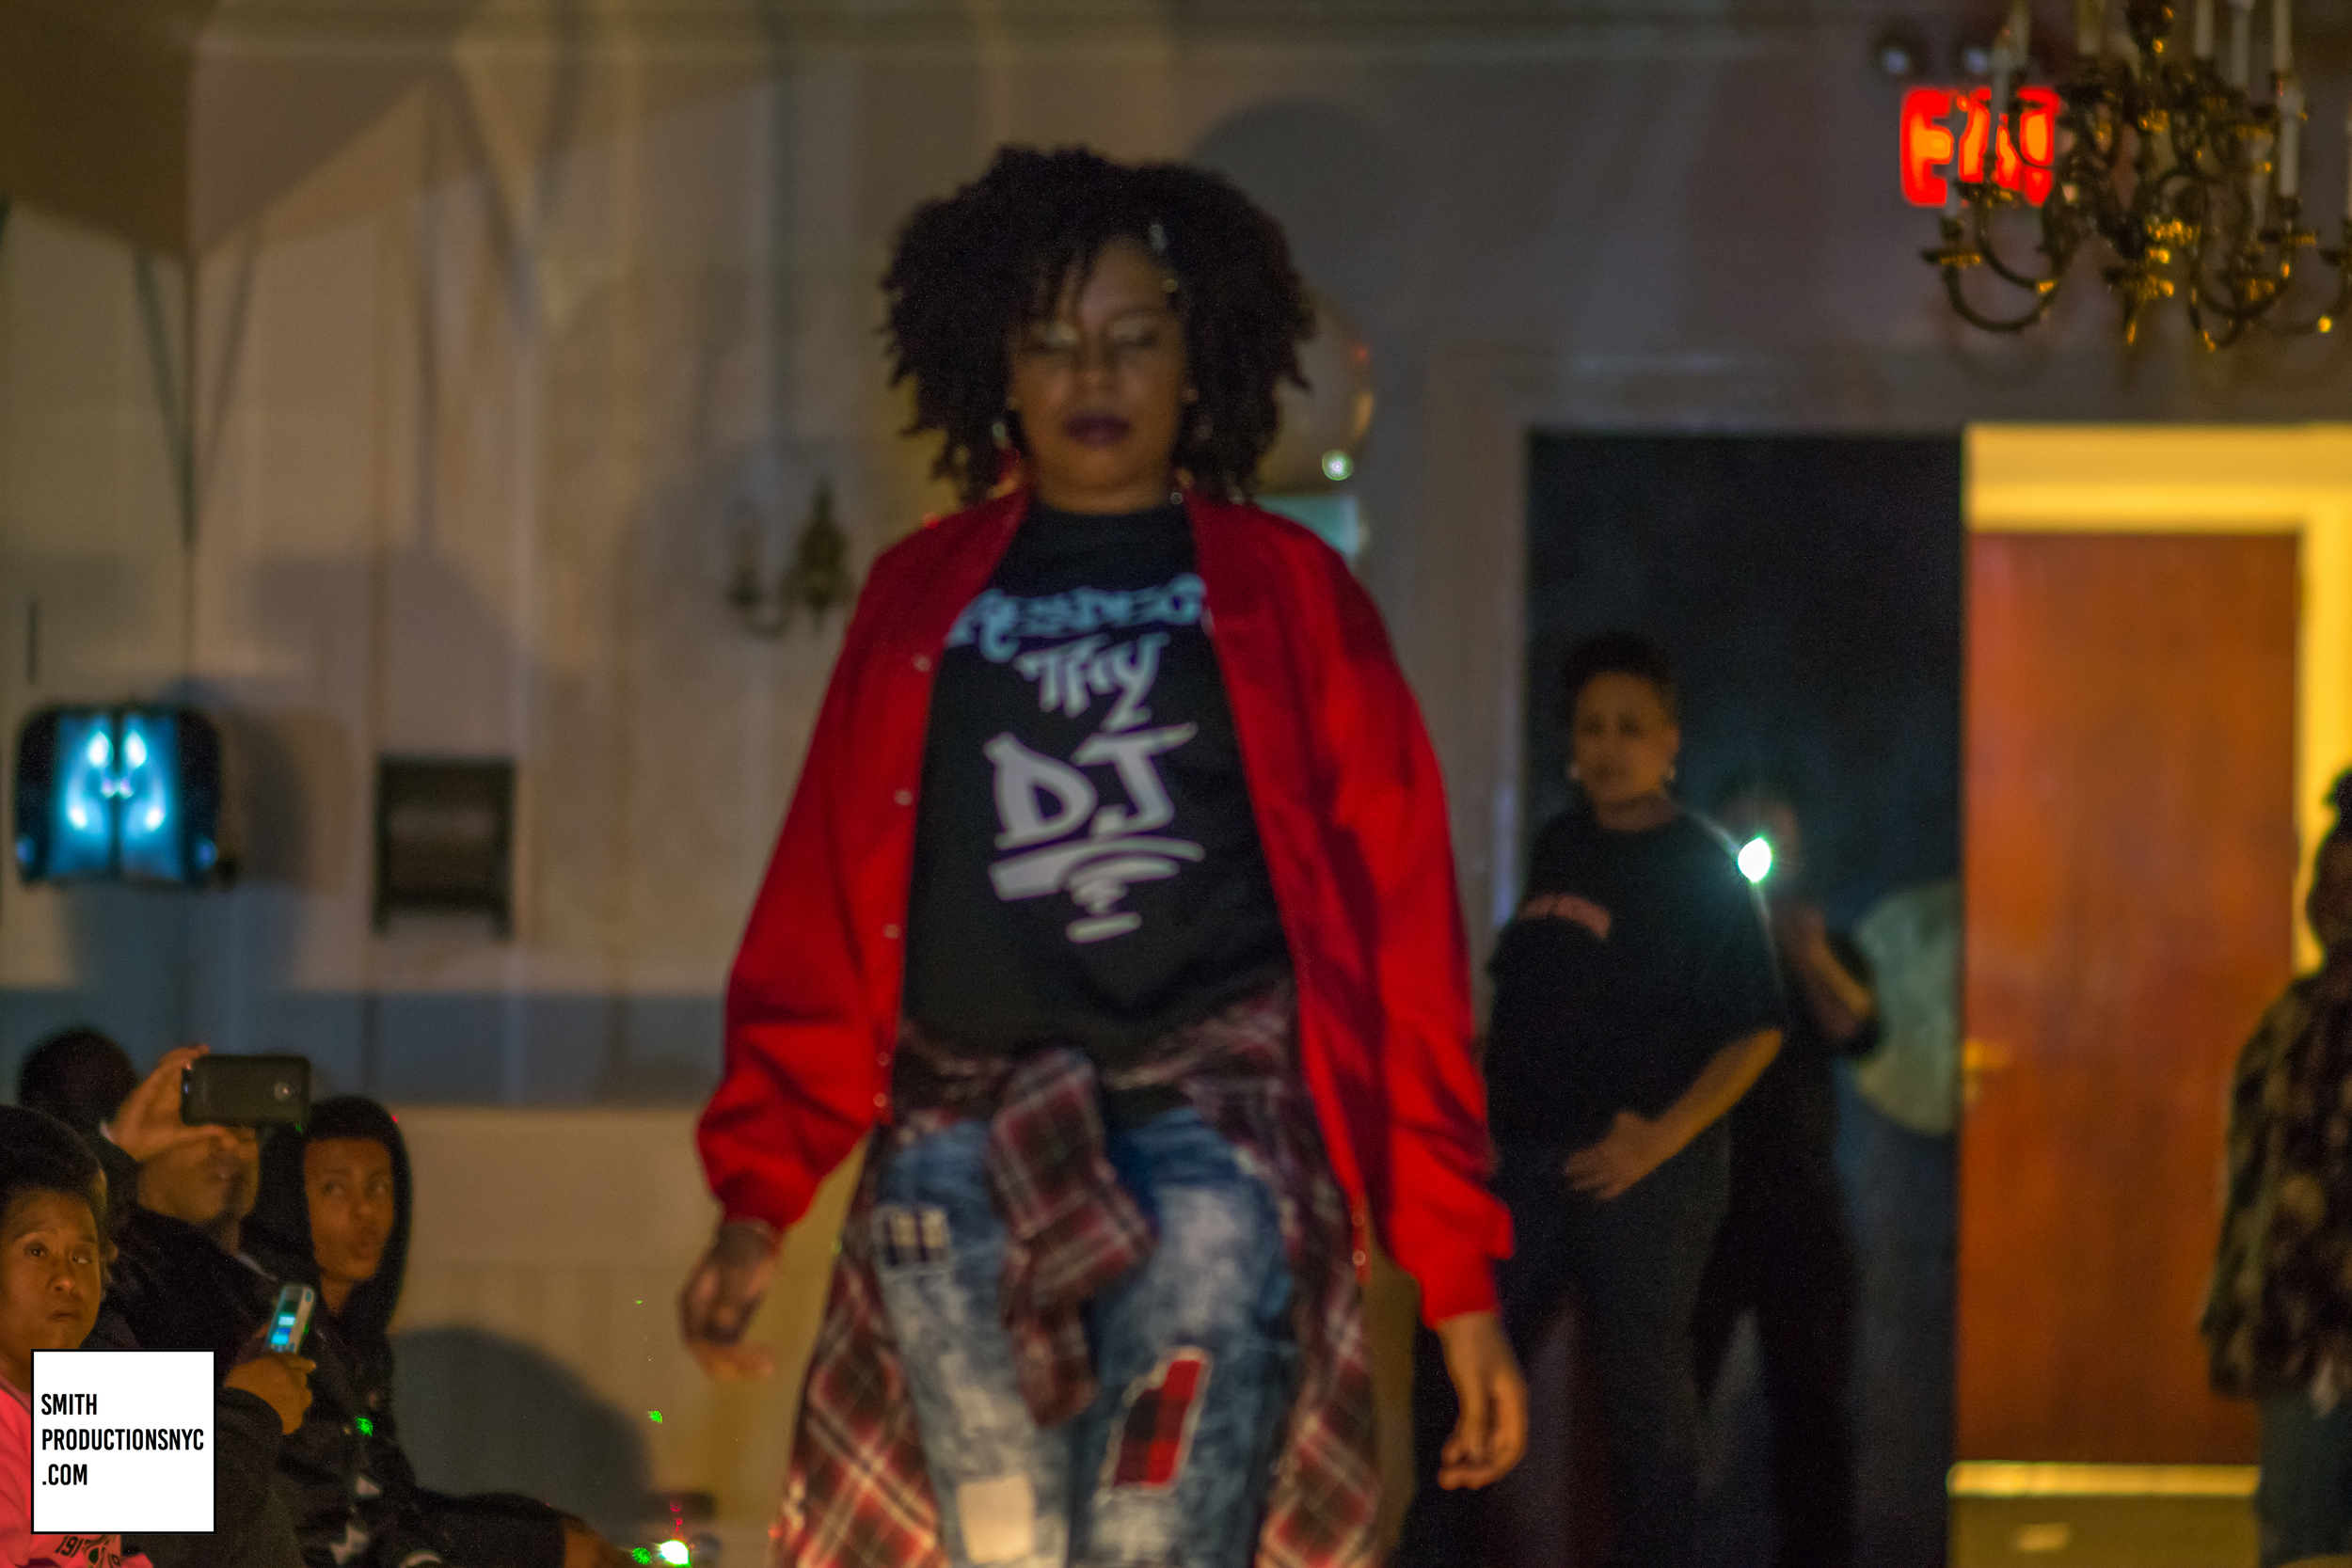 Rose Castle Flushing Garden Stereotype Co. Fashion Show Brooklyn, NY Photos by Adam Smith © 2016-51.jpg